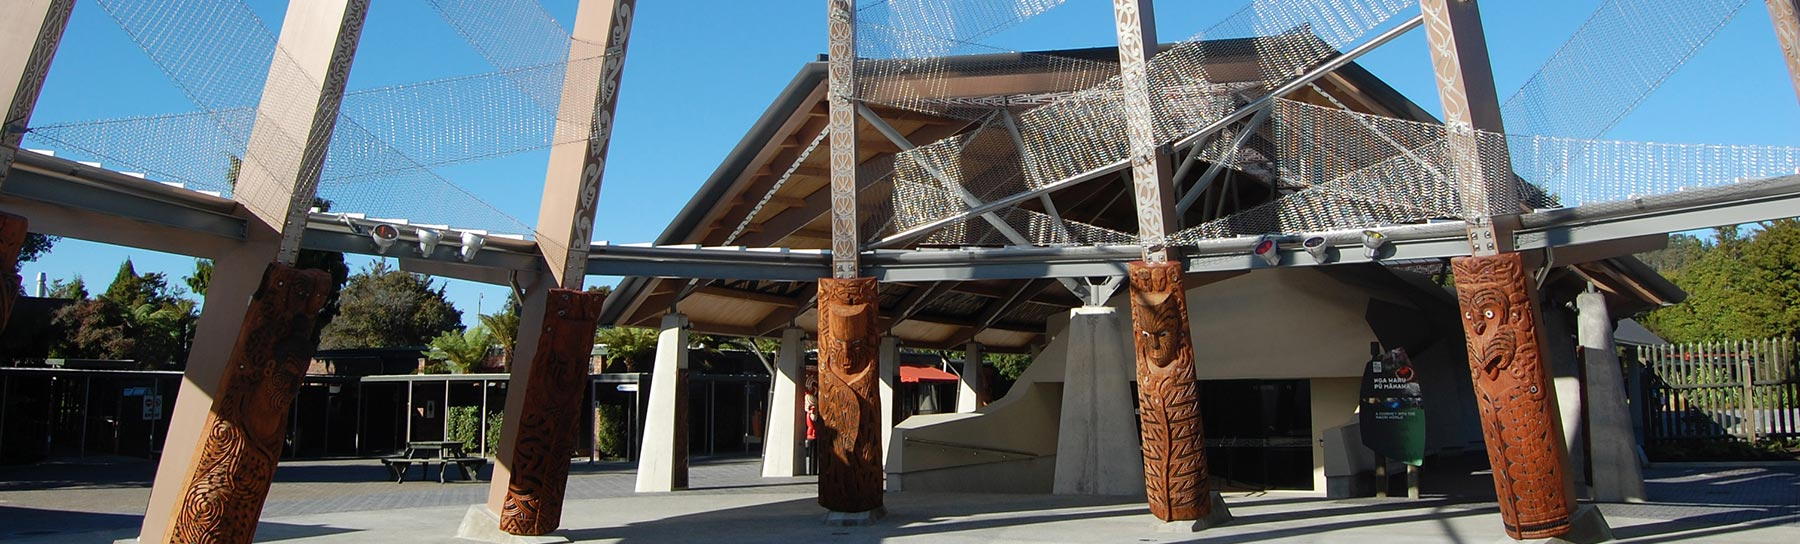 Maori Arts and Crafts Institute